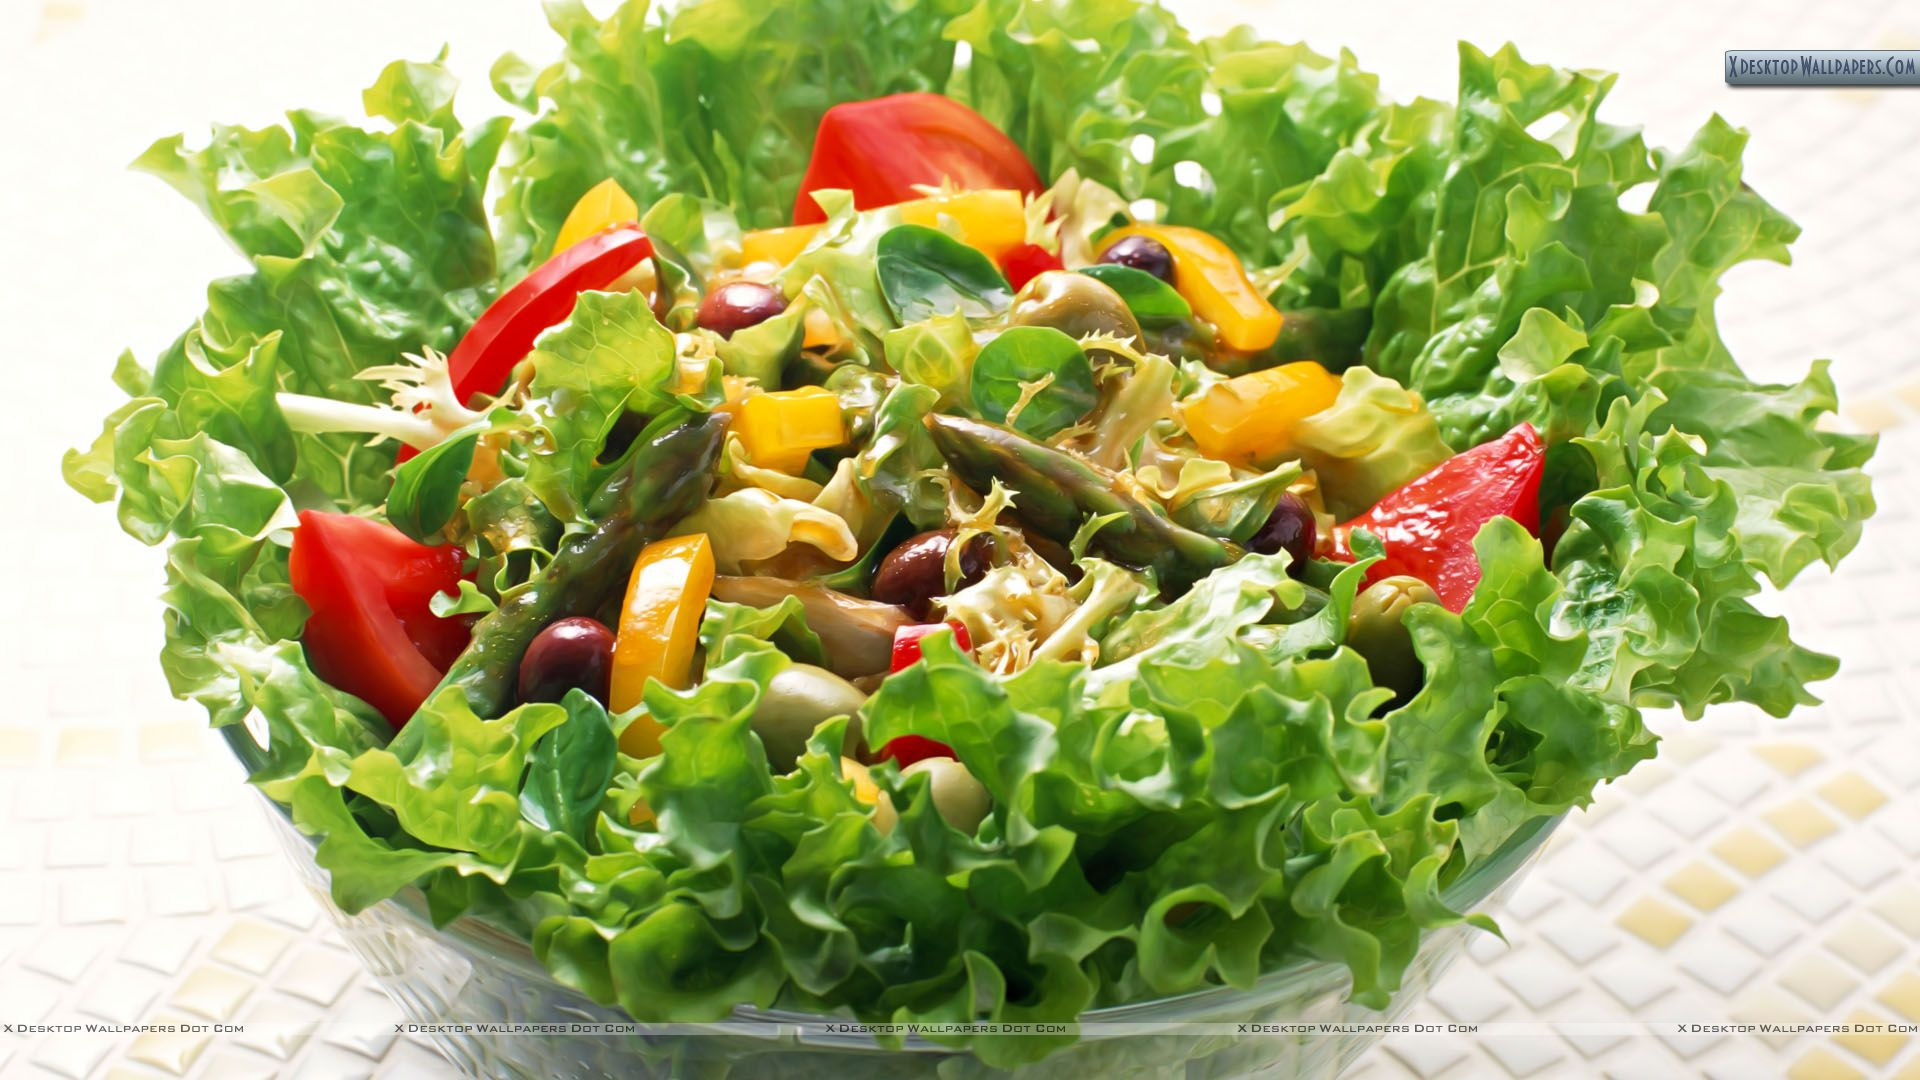 8 Things That Make Salads Unhealthy